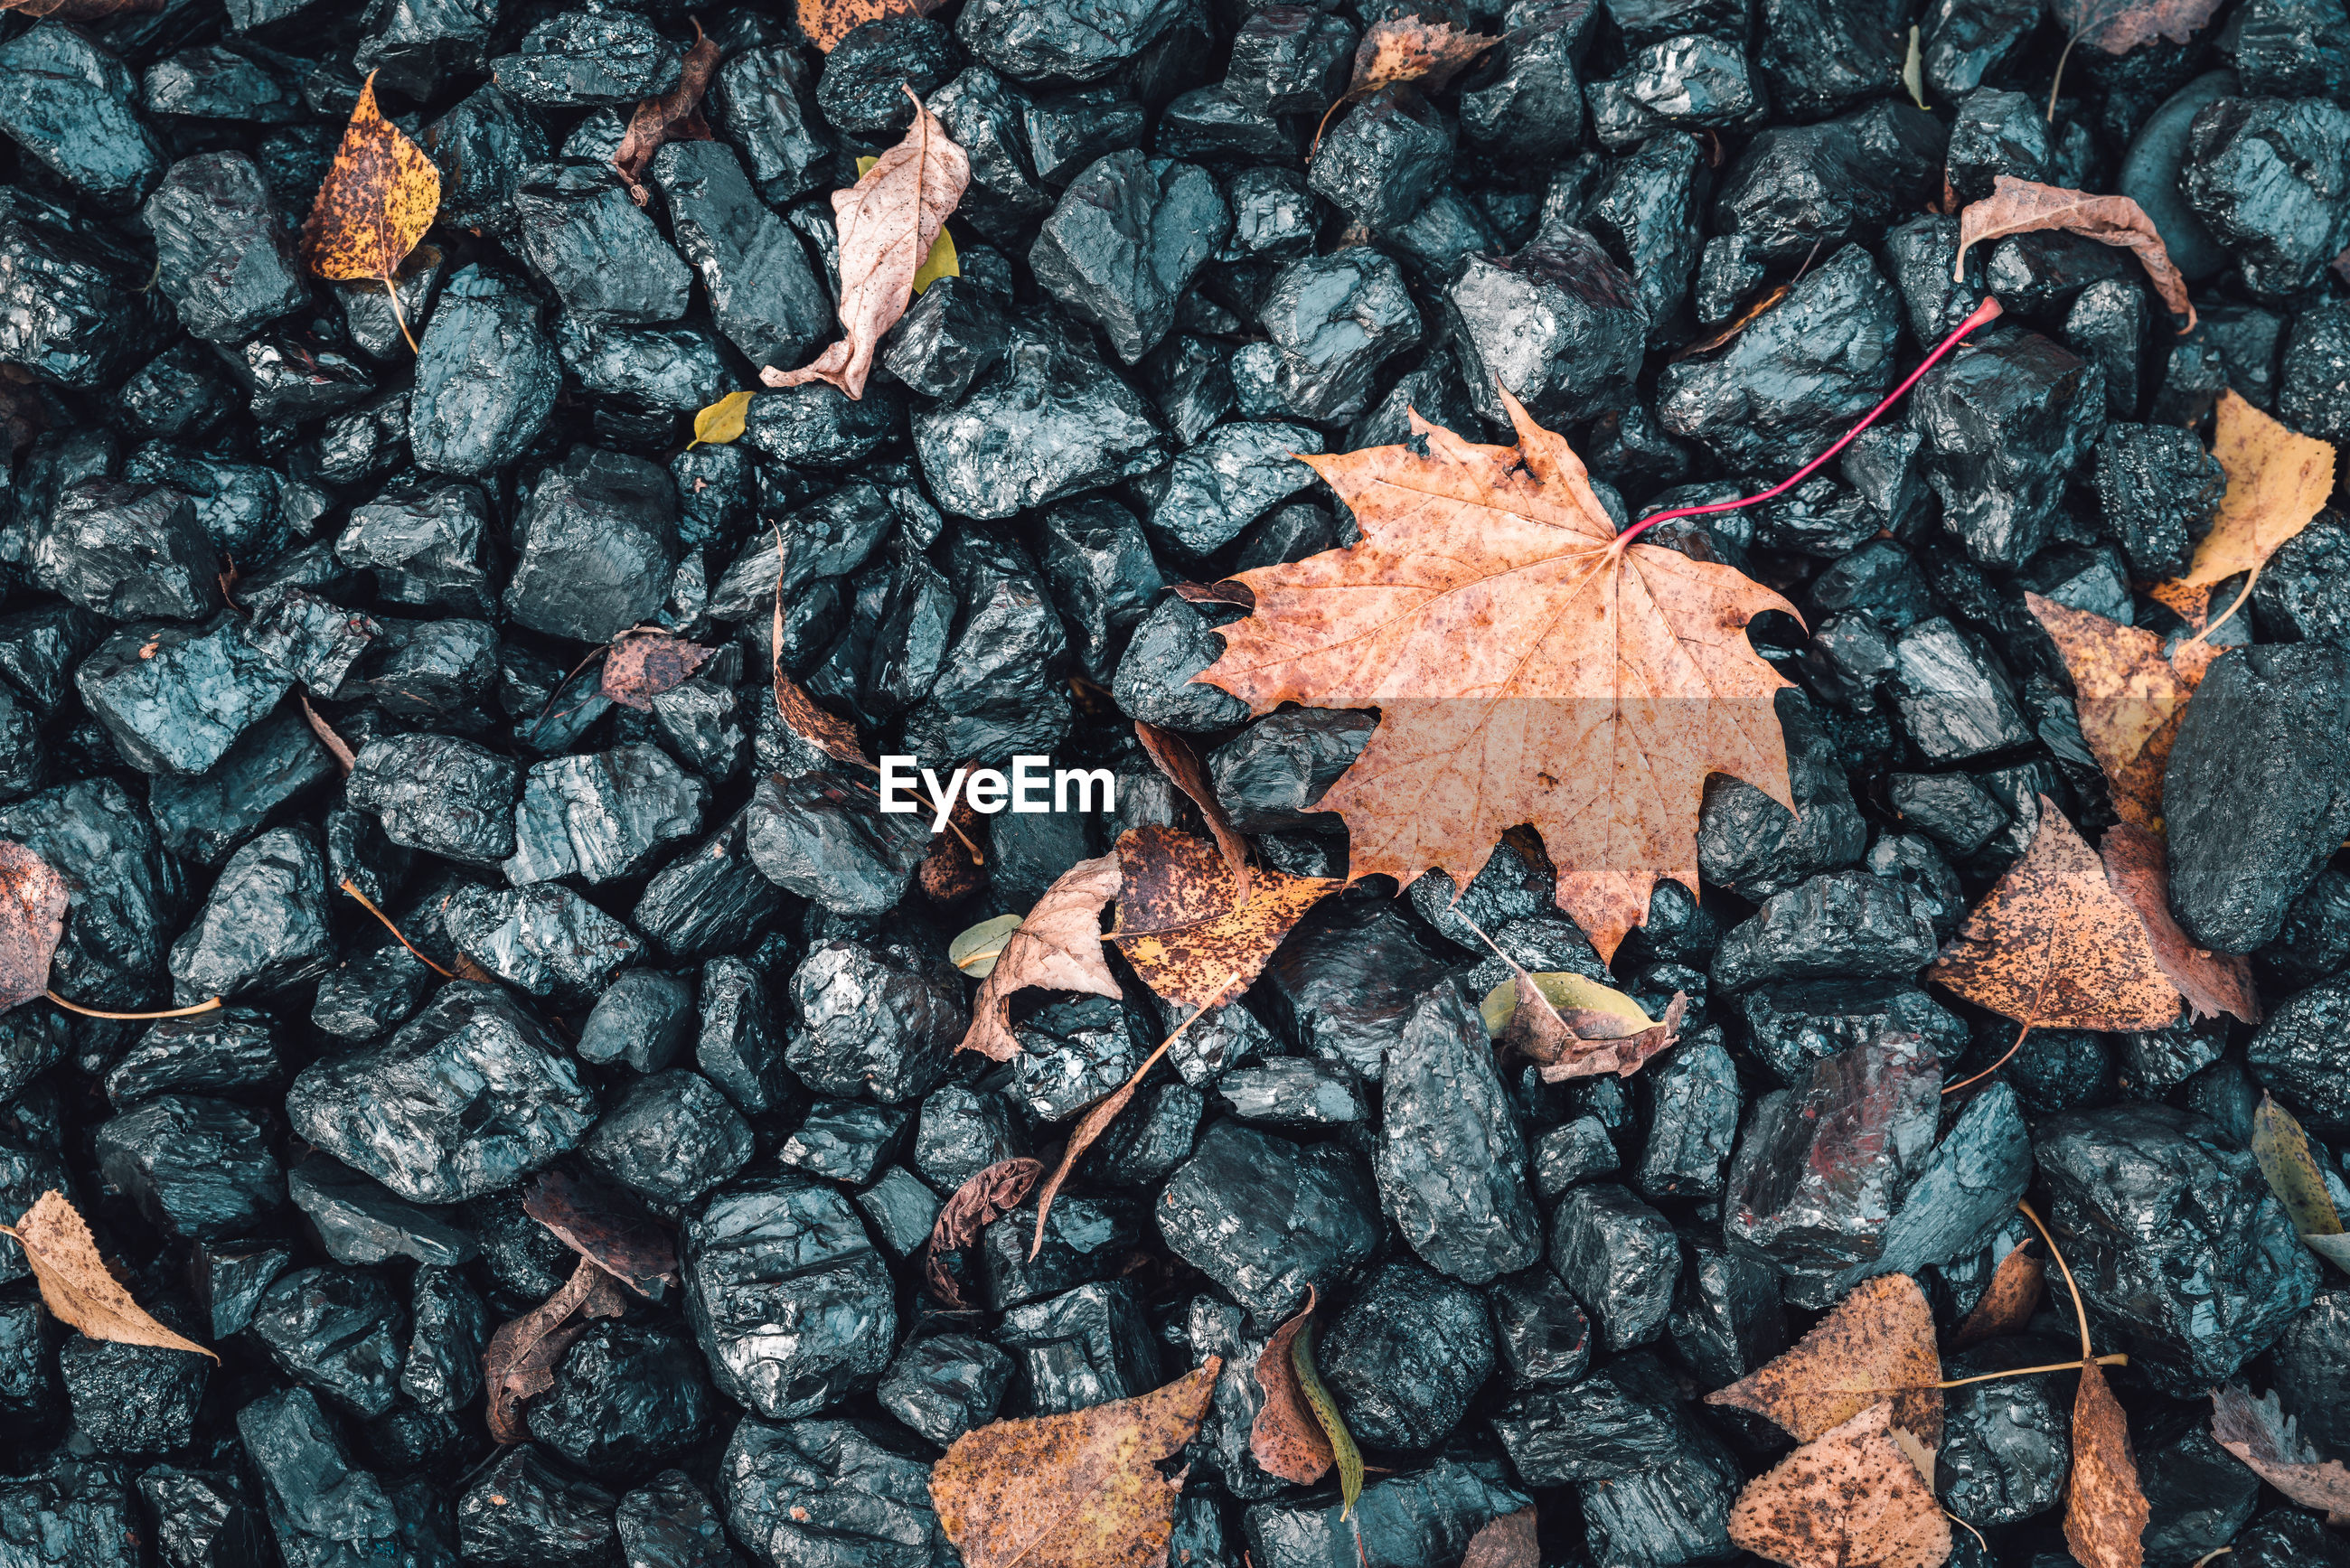 HIGH ANGLE VIEW OF DRY MAPLE LEAVES ON GROUND